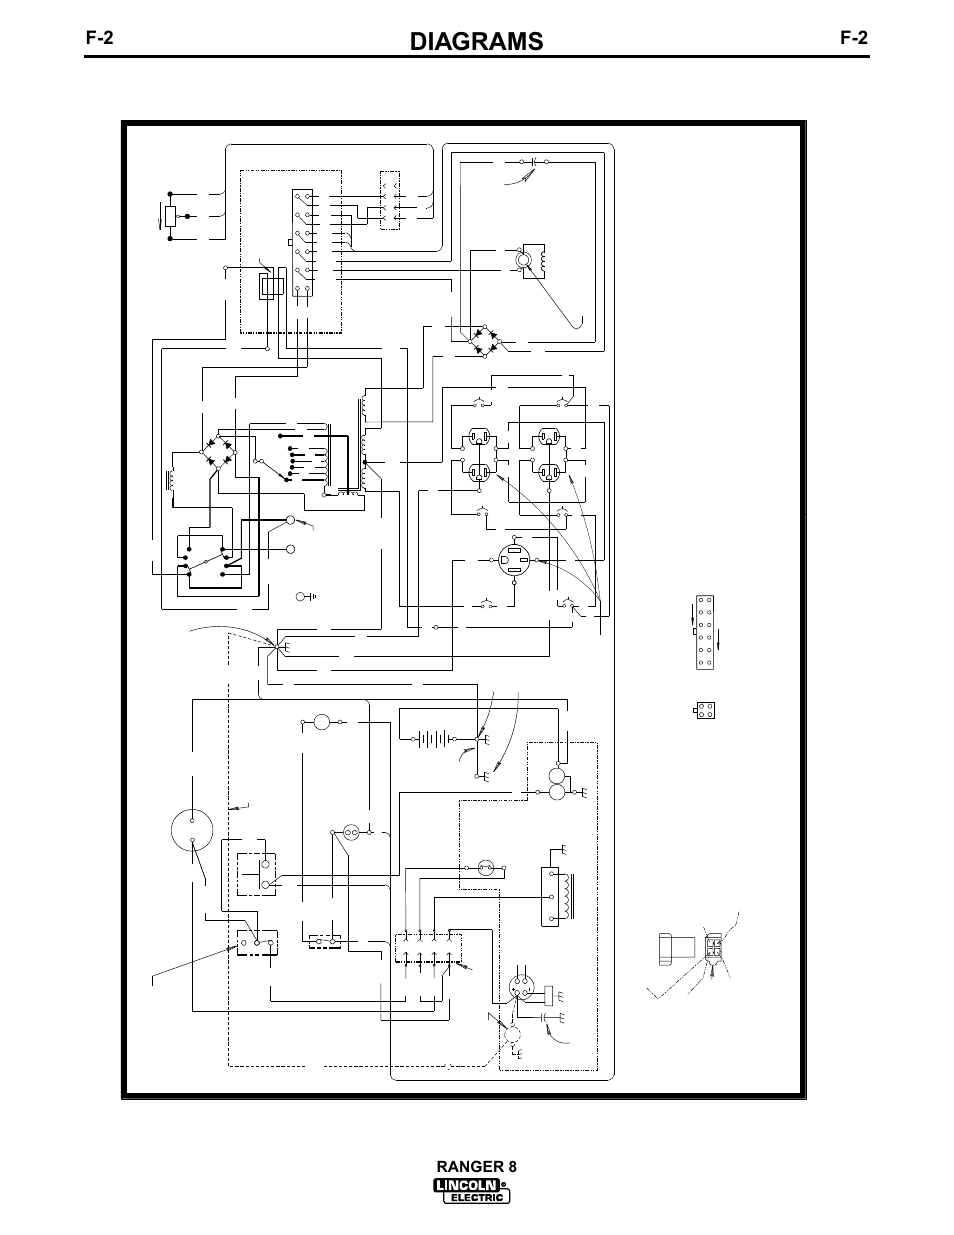 2003 Lincoln Ls Engine Diagram Get Free Image About Wiring Diagram